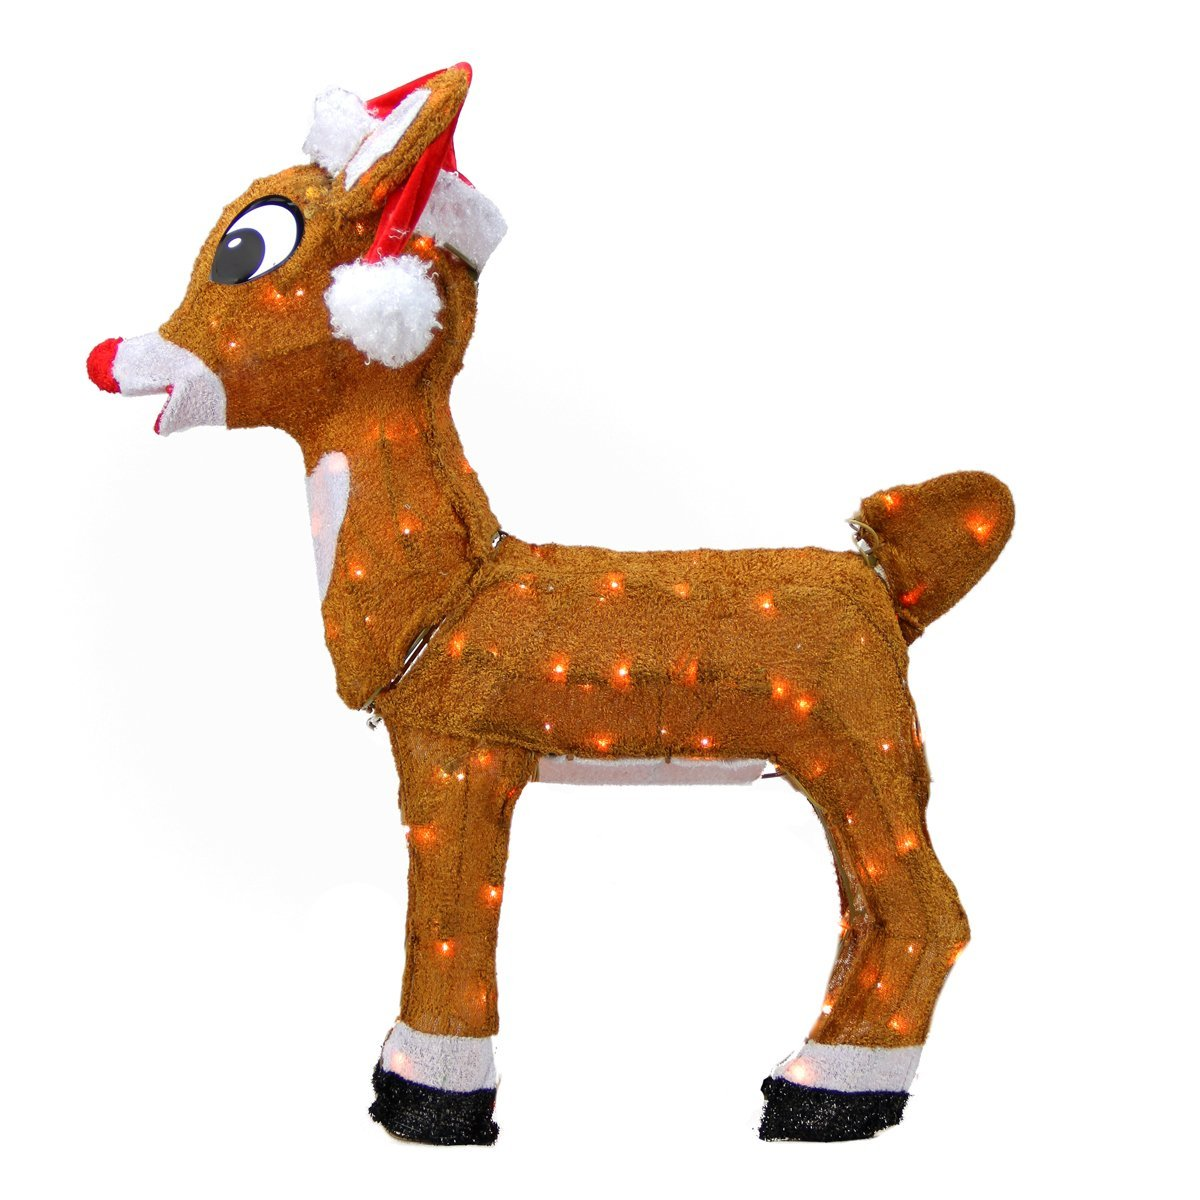 ProductWorks Pre-Lit Rudolph The Red-Nosed Reindeer in Santa Hat Christmas Yard Art Decoration with Clear Lights, 26""